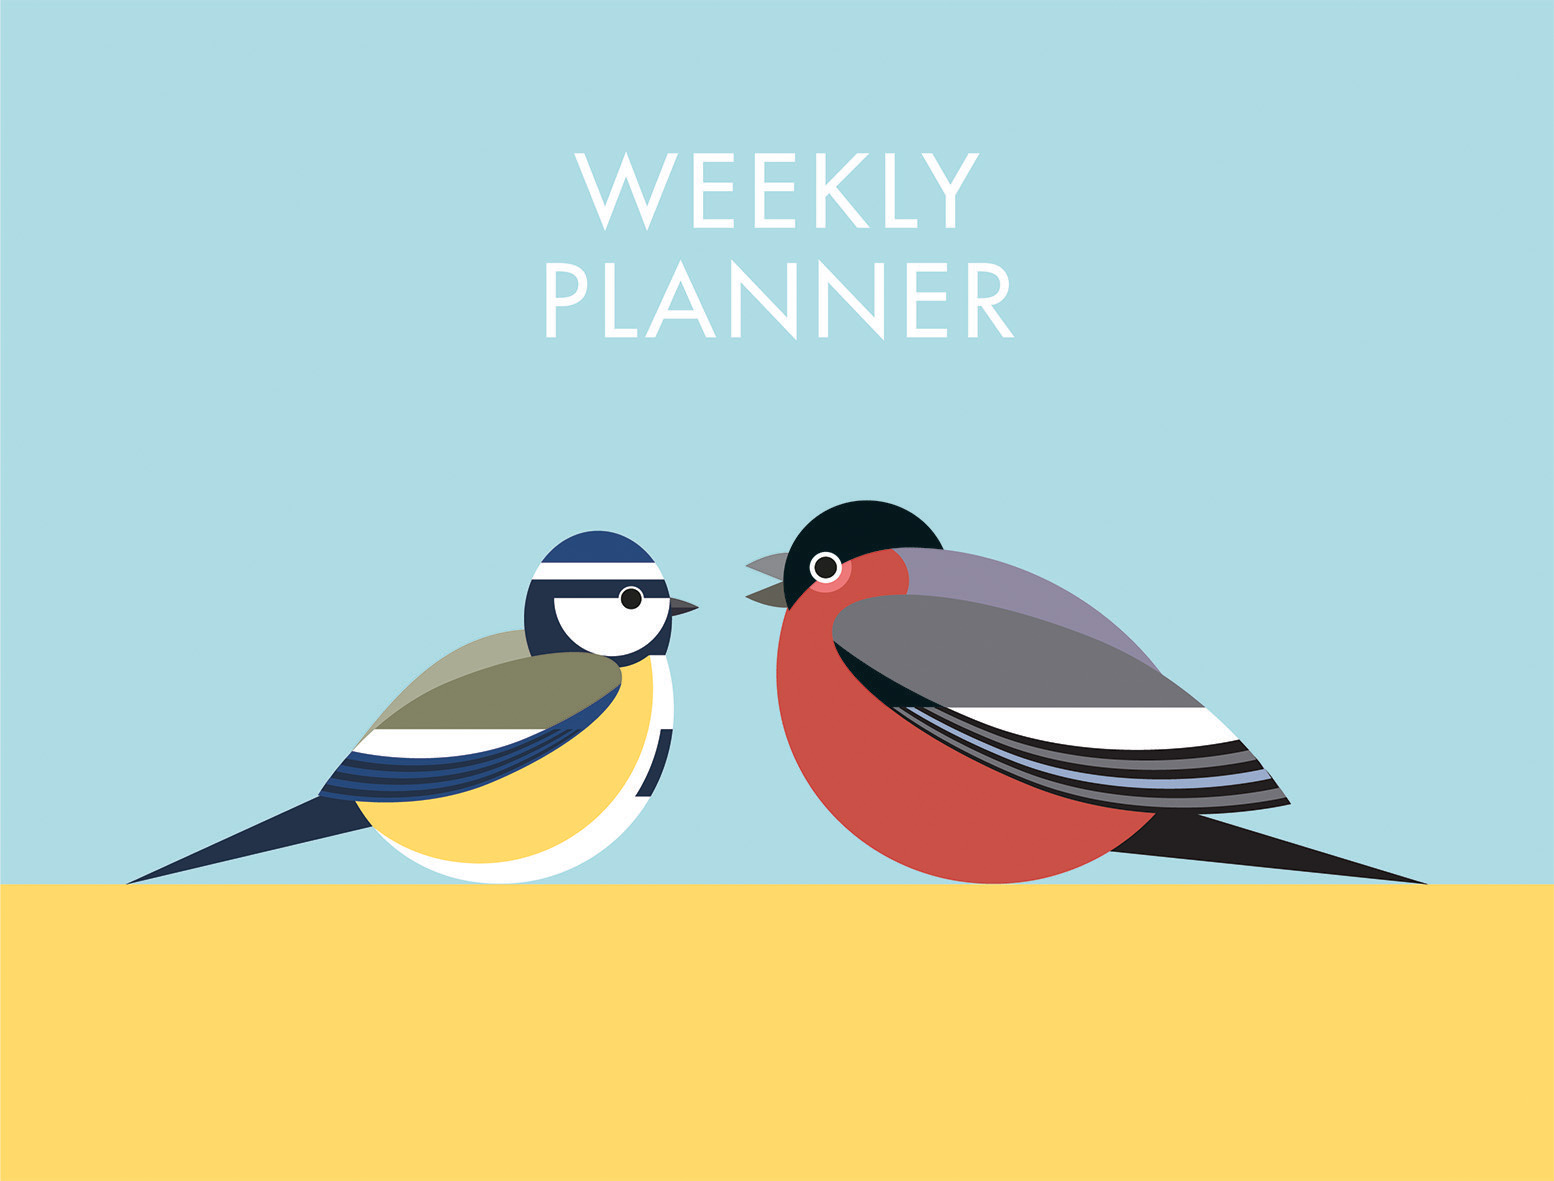 I Like Birds: Garden Birds Weekly Planner